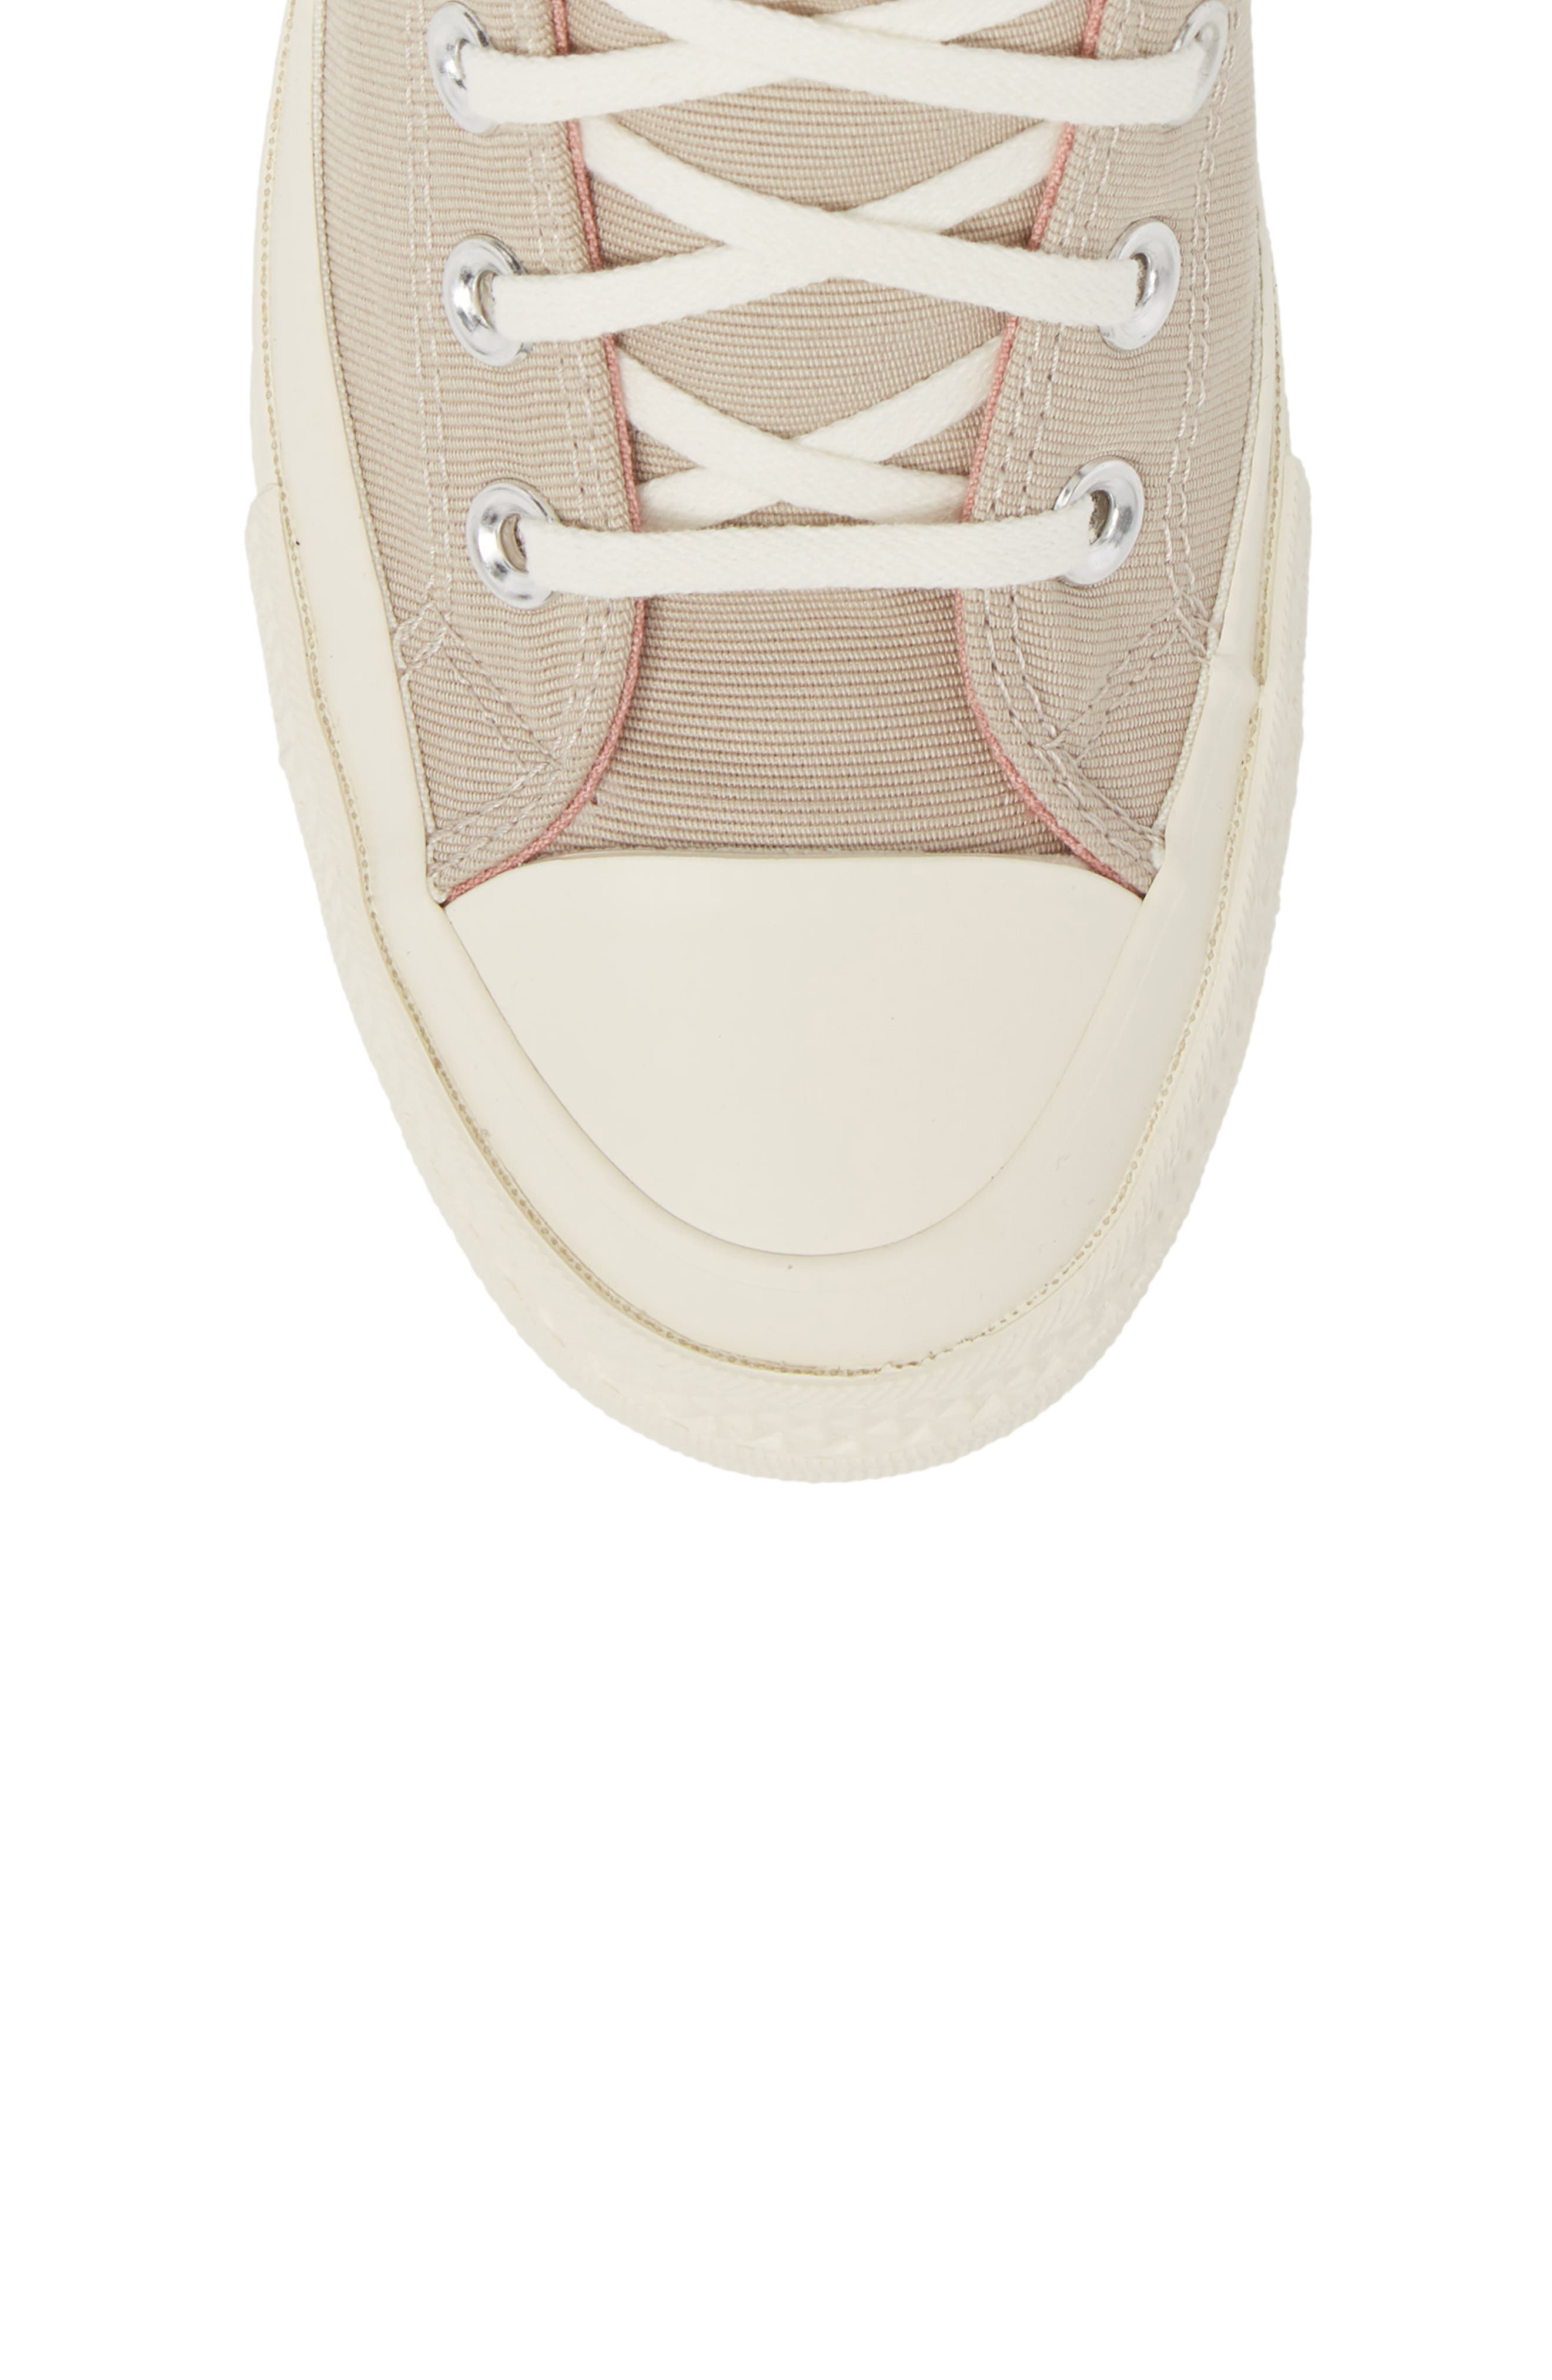 Chuck Taylor<sup>®</sup> All Star<sup>®</sup> Ripple High Top Sneaker,                             Alternate thumbnail 4, color,                             Papyrus Suede